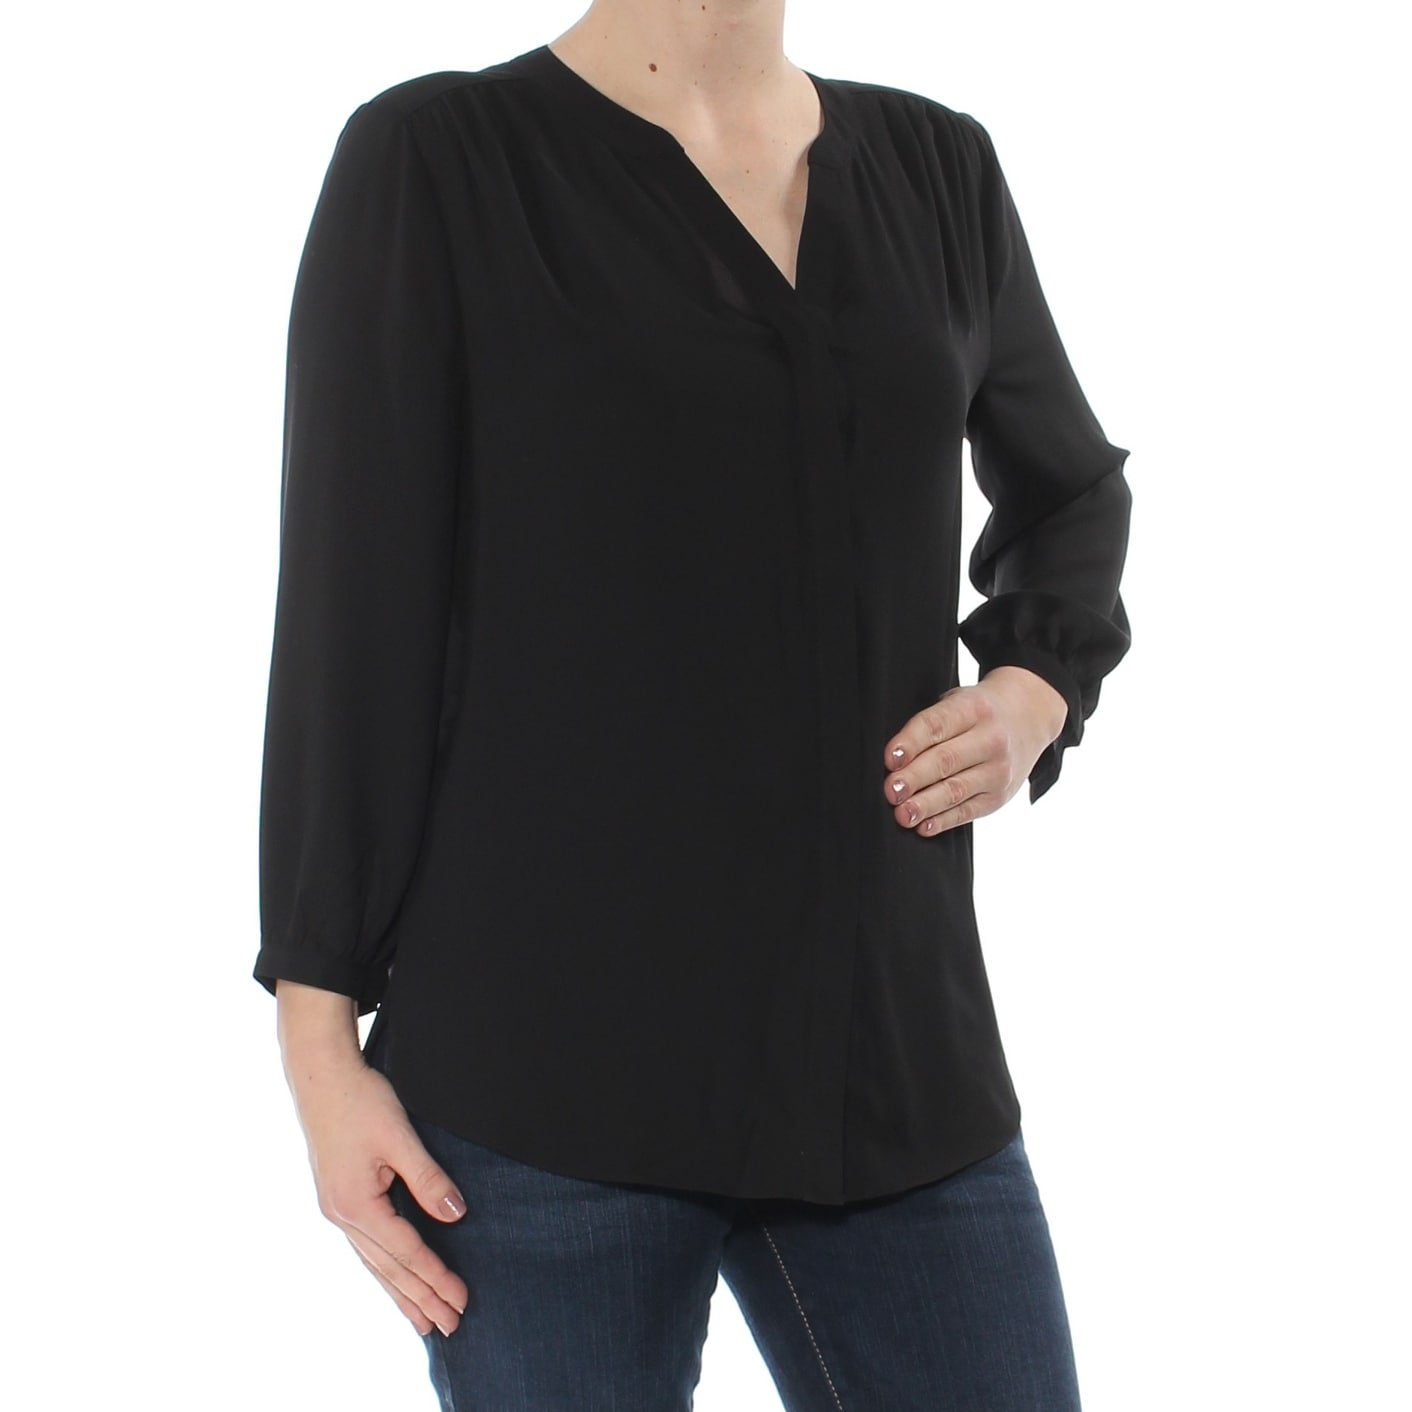 845034913 Anne Klein Tops | Find Great Women's Clothing Deals Shopping at Overstock